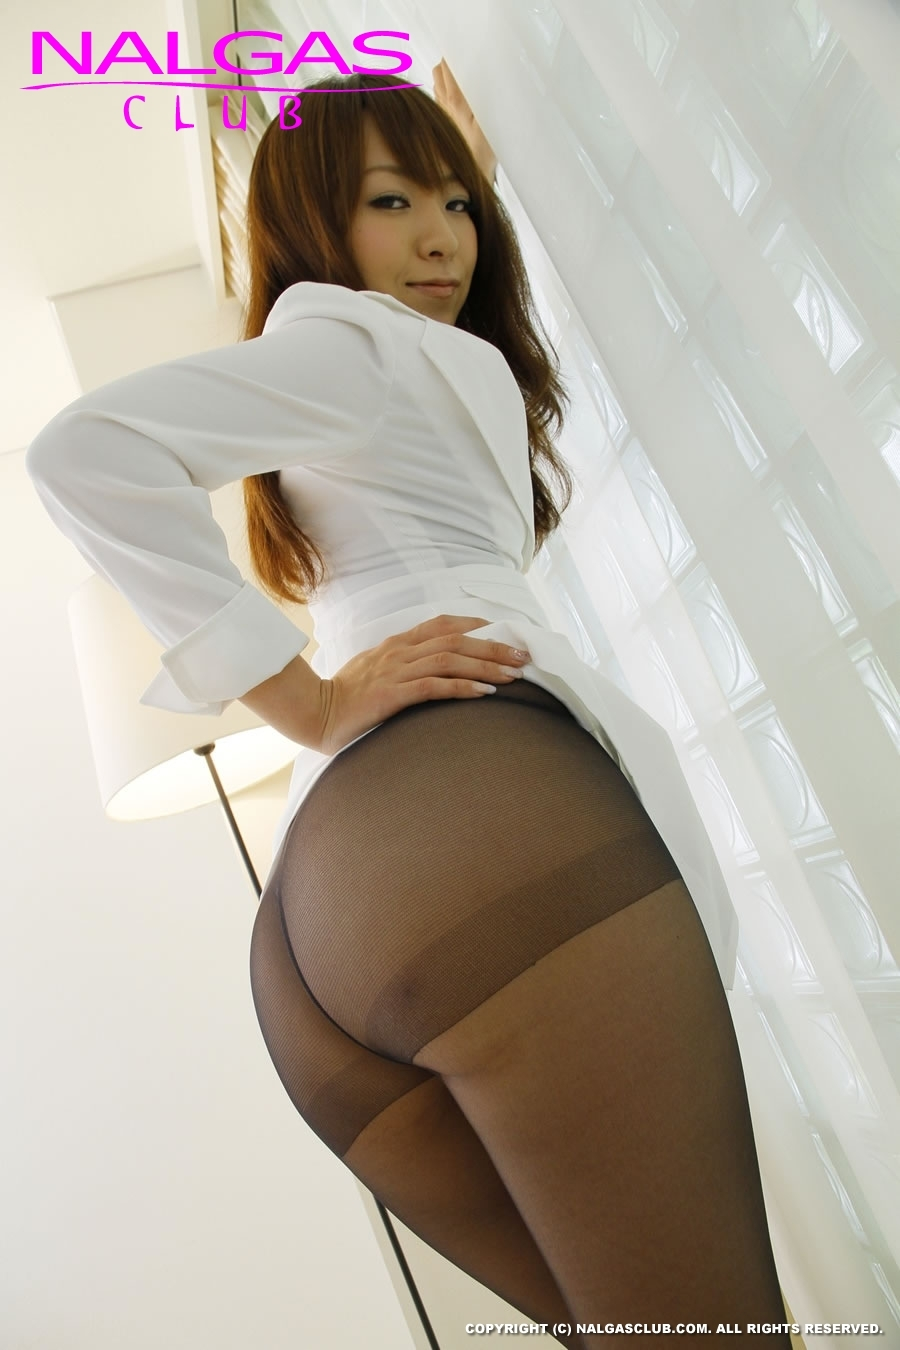 Interesting. Japanese ass in pantyhose suggest you